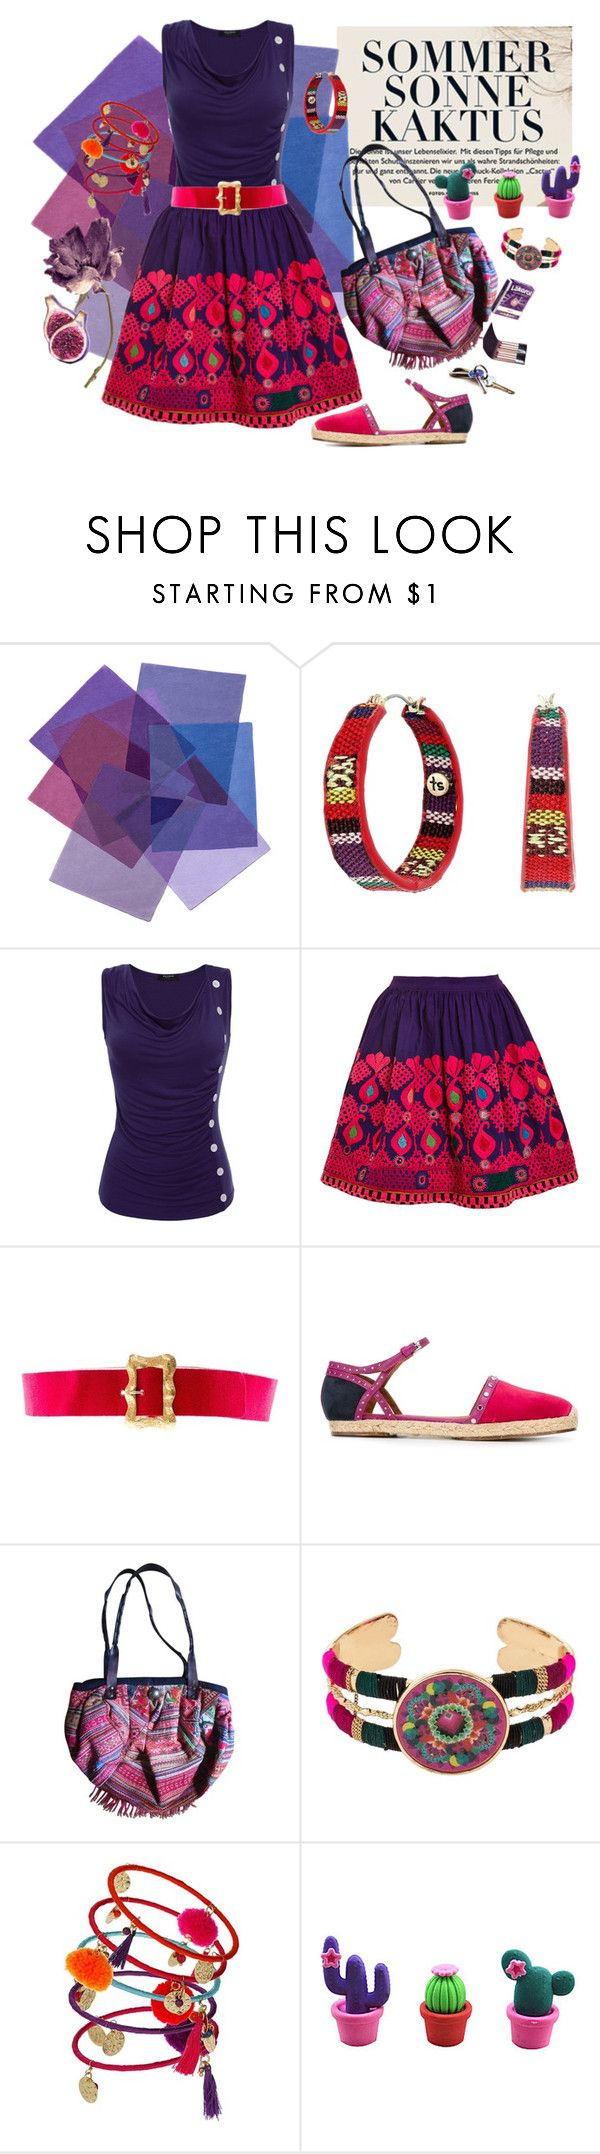 """""""Sommer Sonne Kaktus"""" by synkopika ❤ liked on Polyvore featuring The Sak, Mochi, Chanel, Lanvin, Desigual, Dorothy Perkins and statementskirt"""